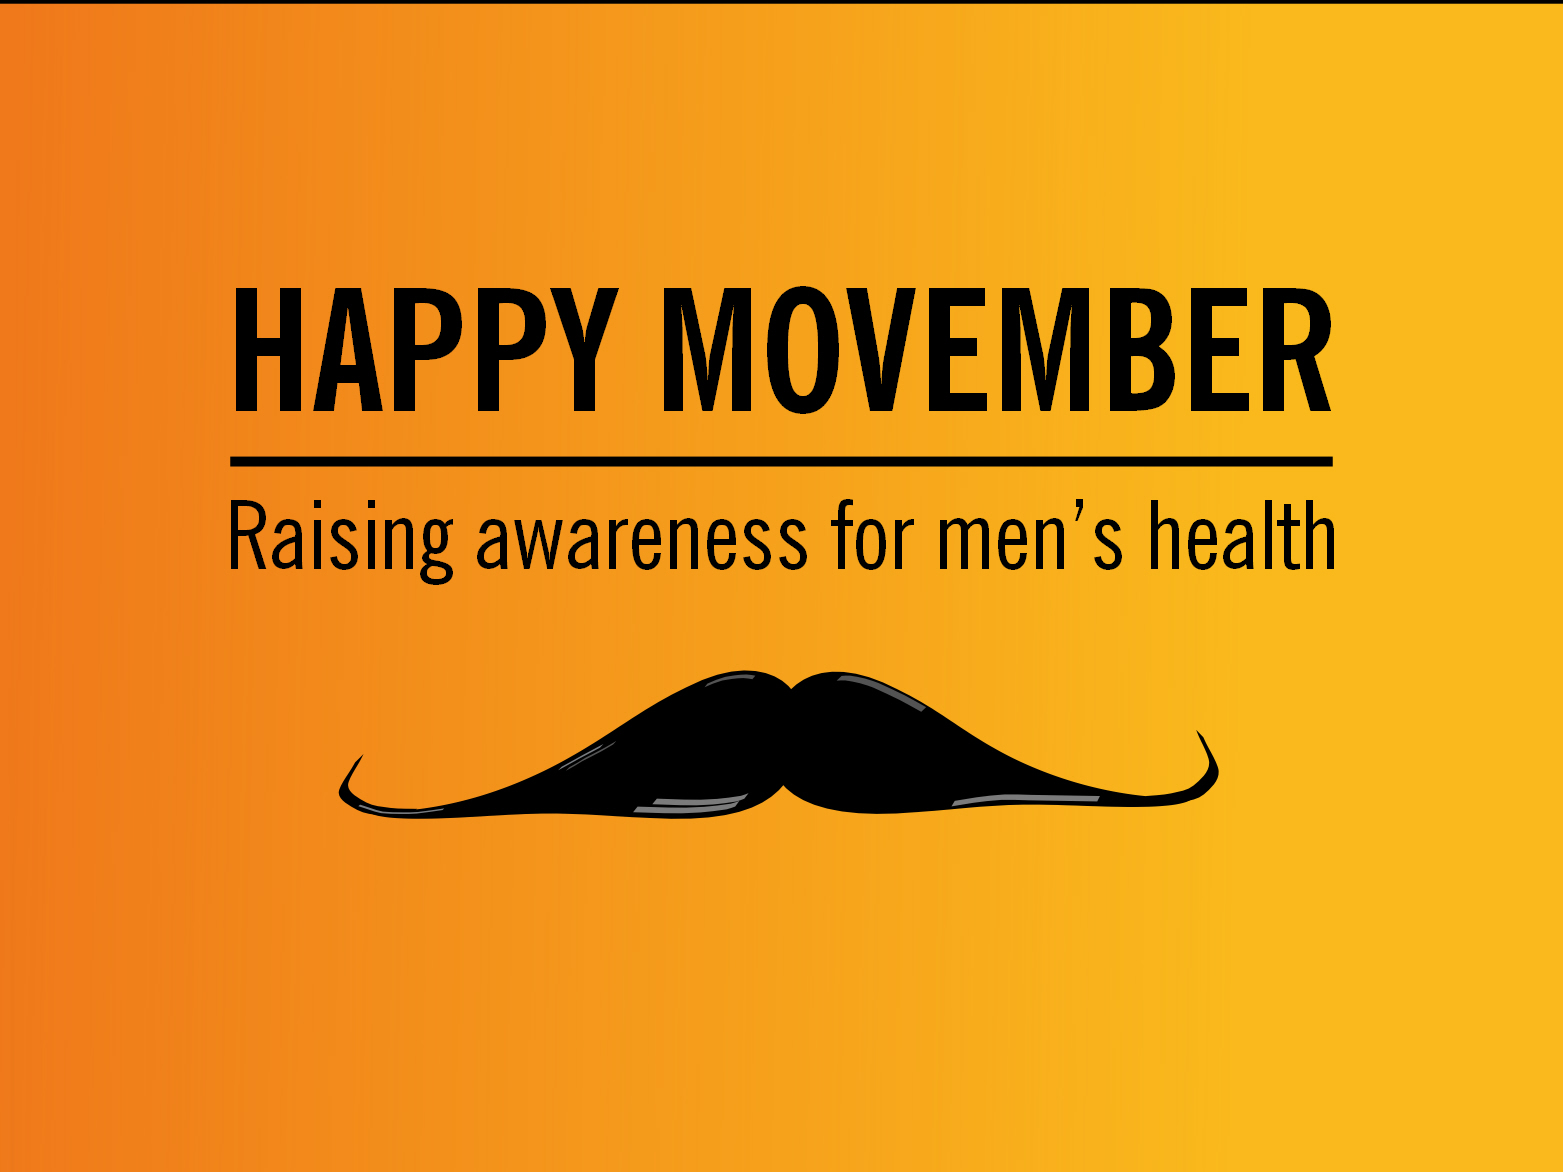 Happy Movember – More than just a moustache! (TEMPLATE MyCouncillor story)